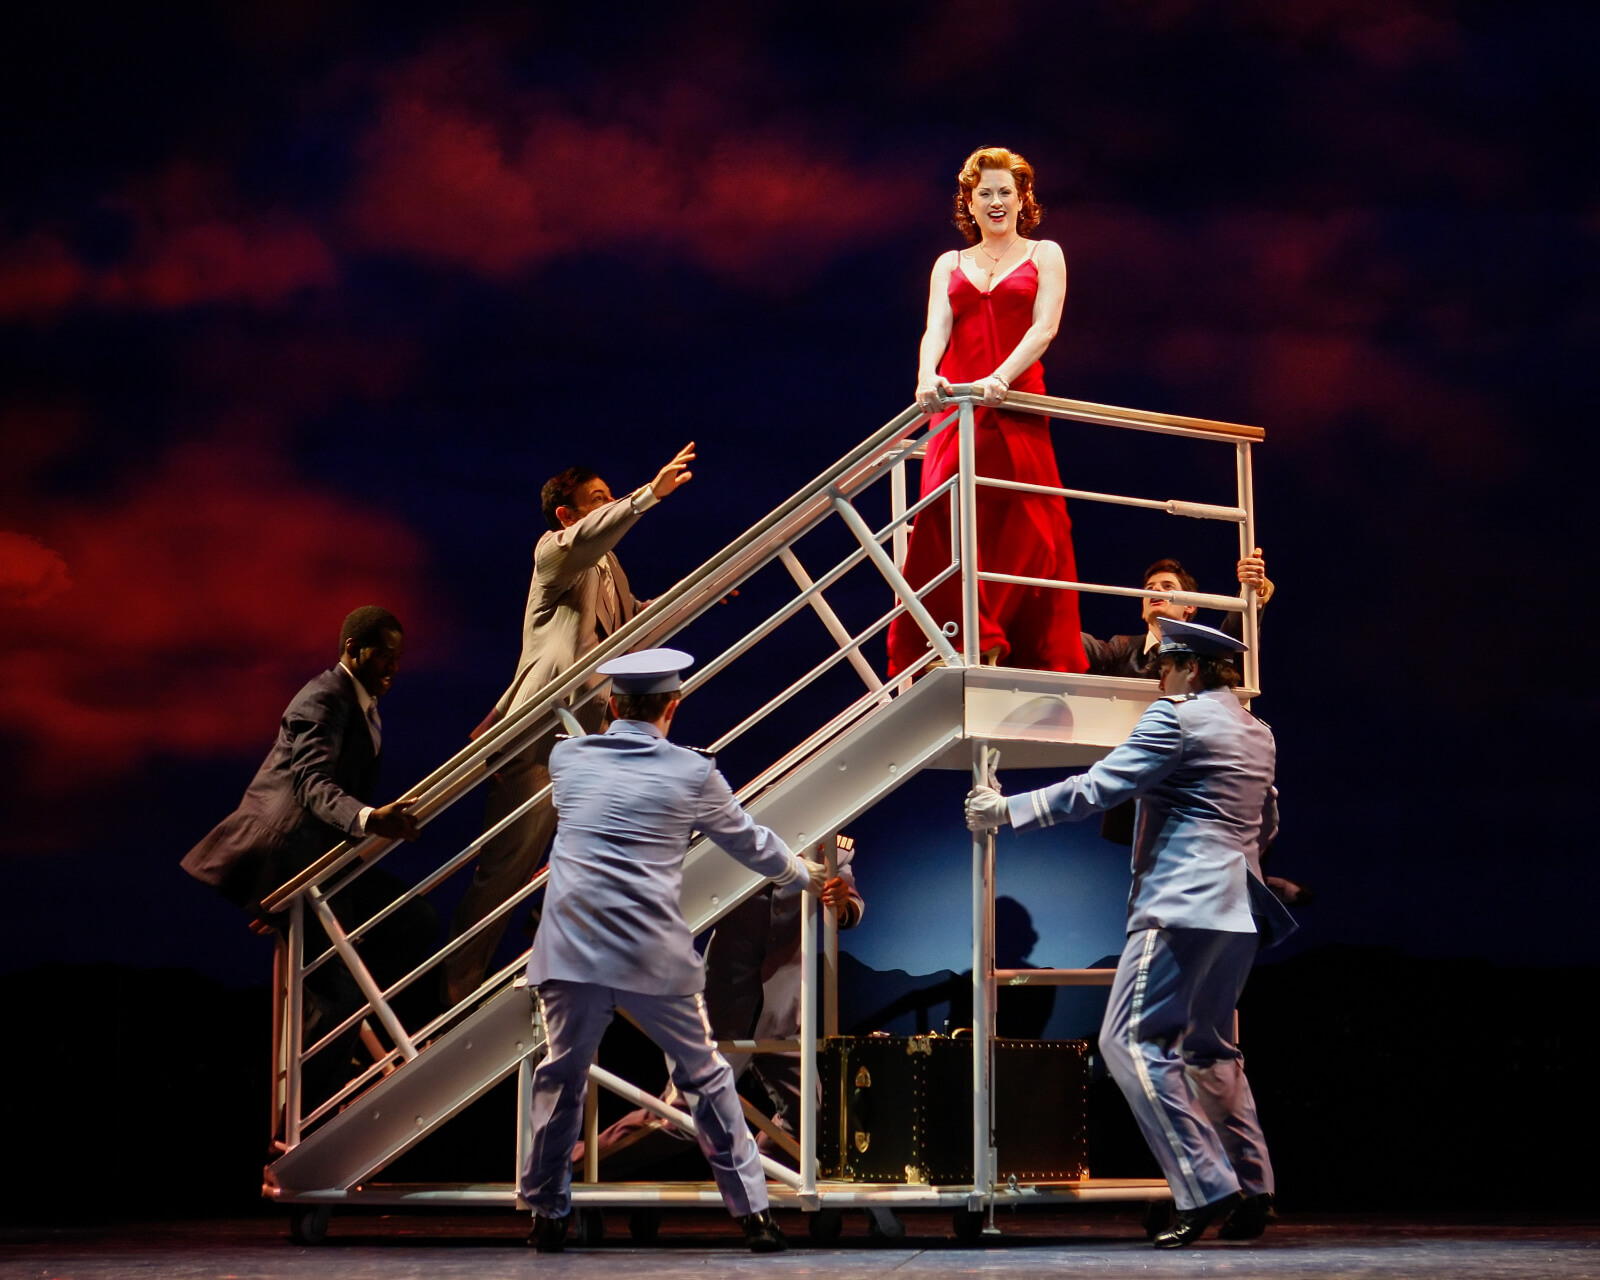 """Elizabeth (Megan Mullally) sings """"Please Don't Touch Me"""" at the ships pier. She is standing on a rolling stair unit and is surrounded by the crew from the ship."""